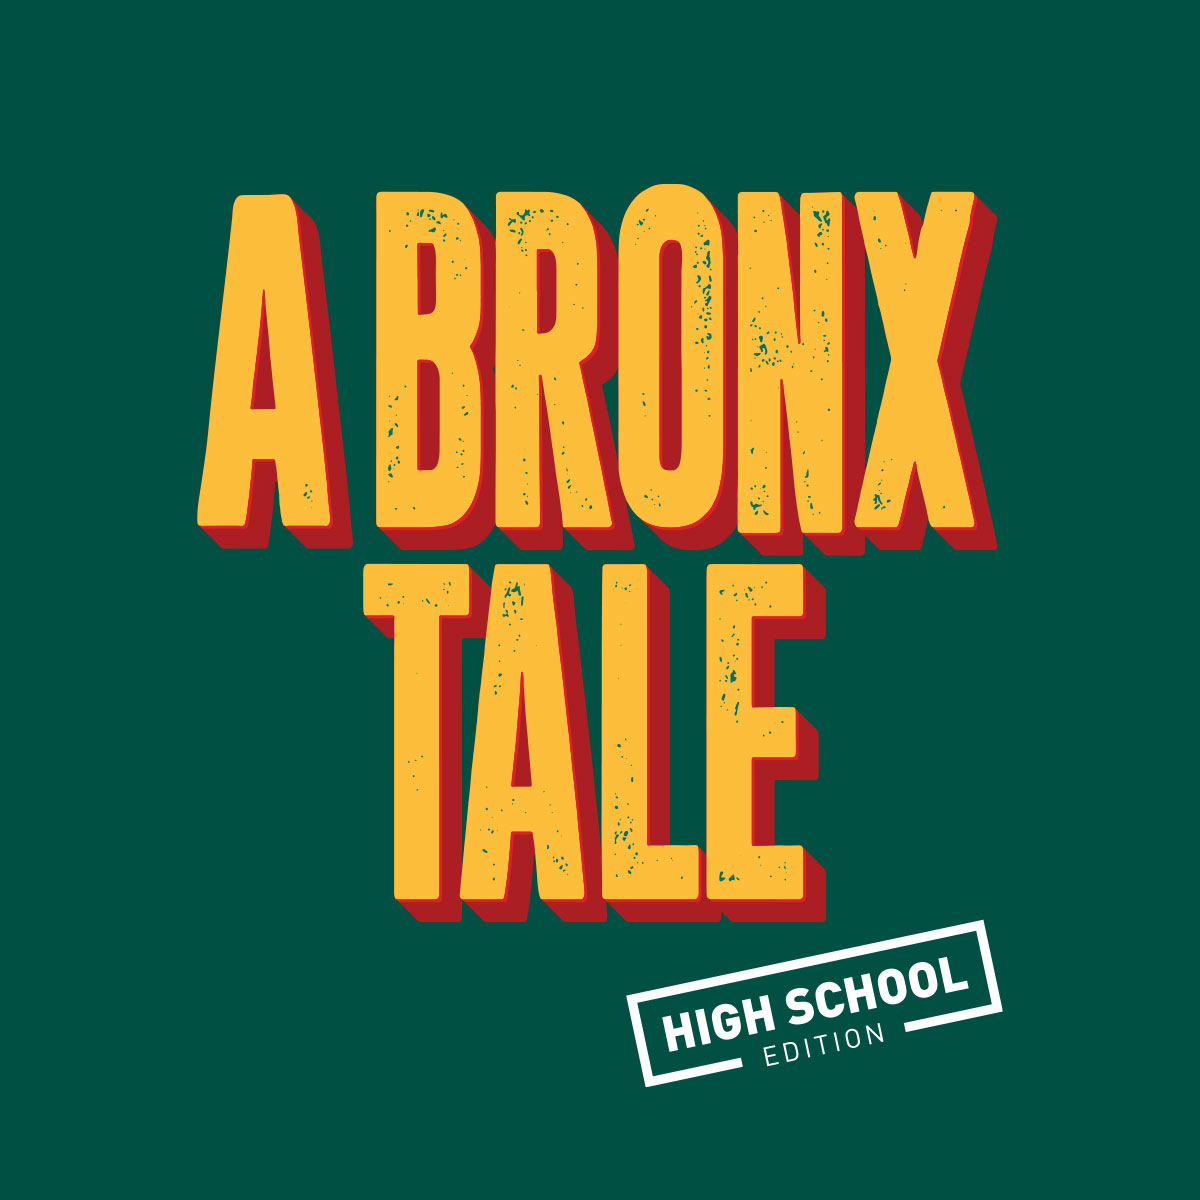 A Bronx Tale (High School Edition) Logo Pack